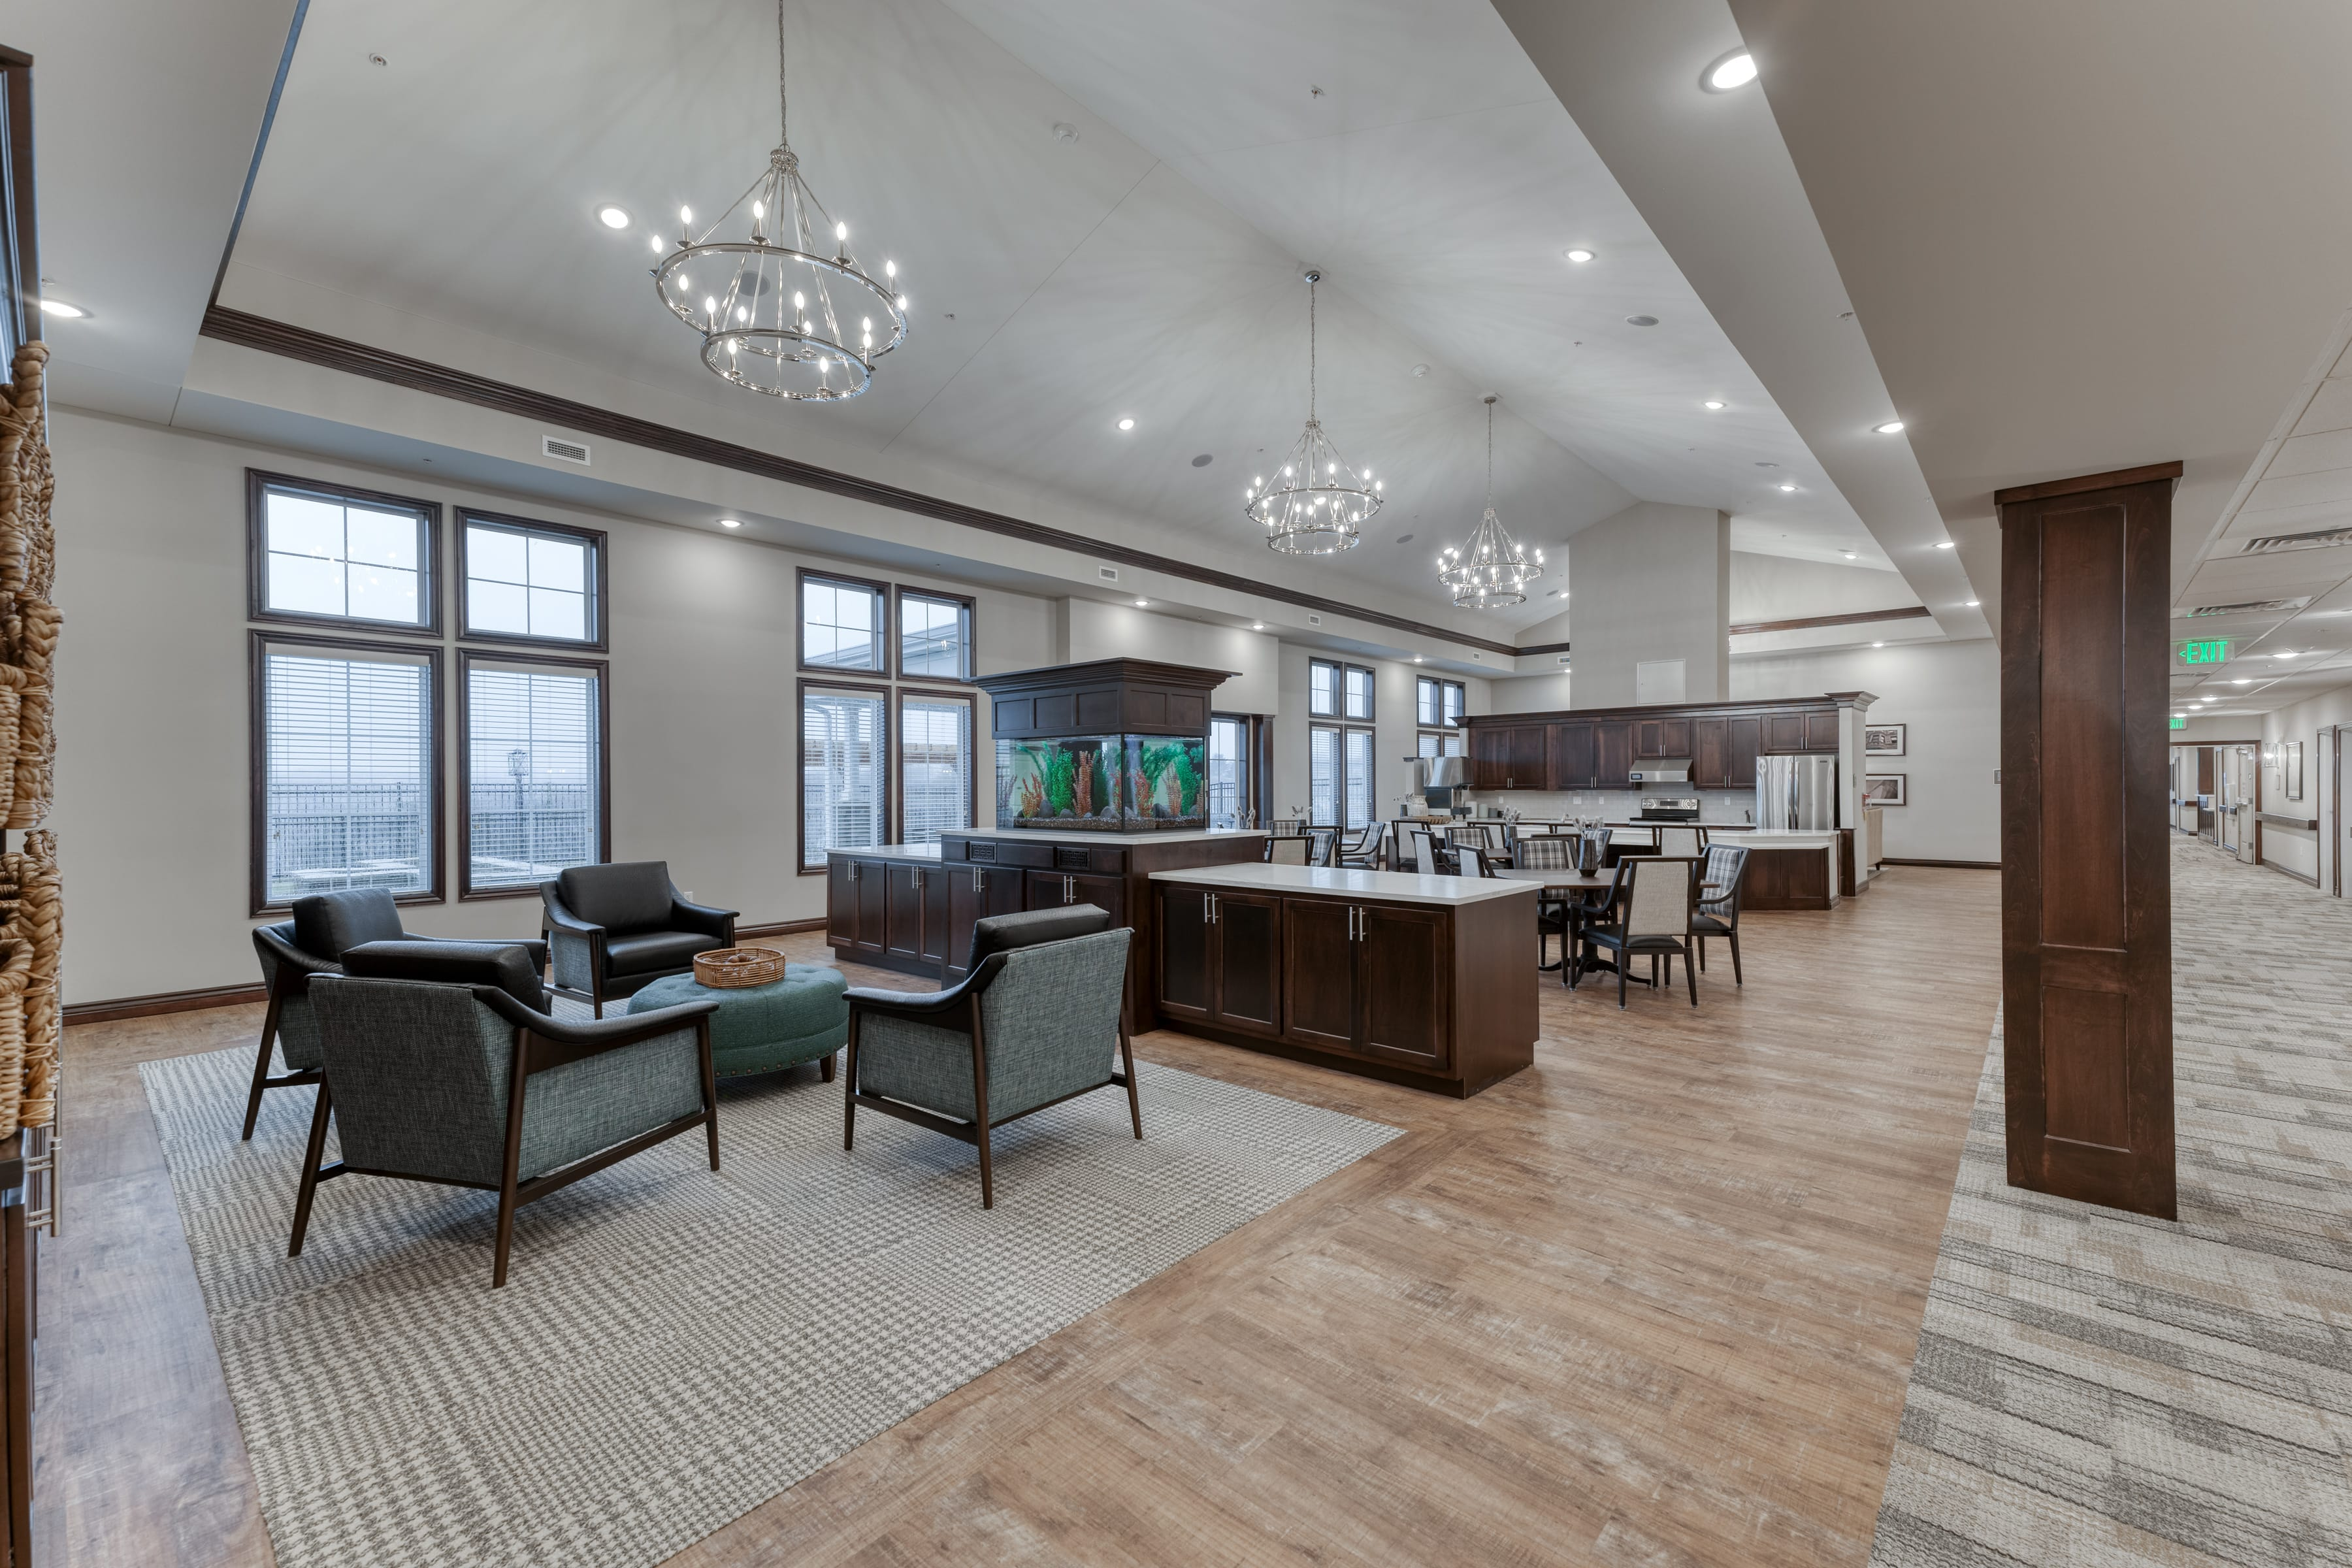 Open areas with tall ceilings and elegant lighting provide comfortable spaces for residents